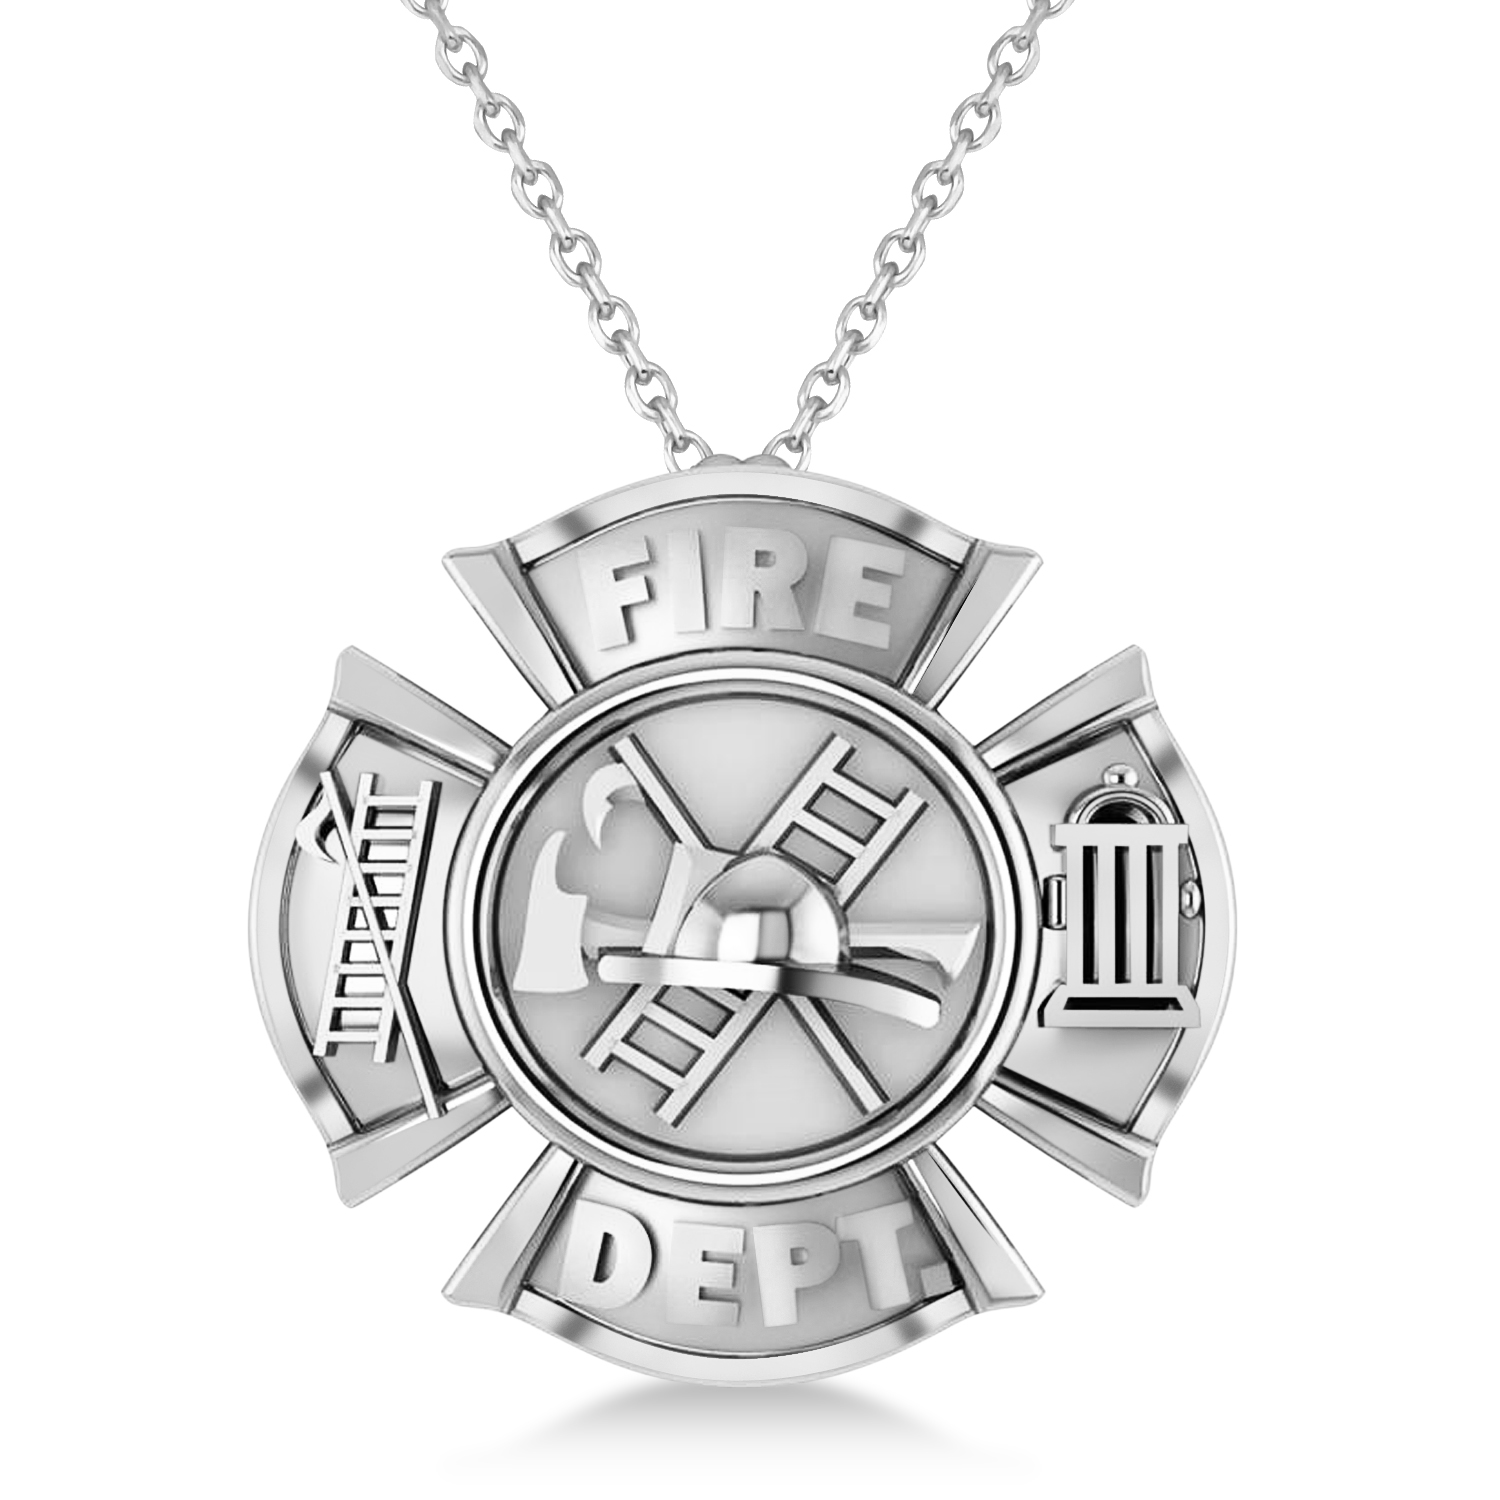 Fire Department Badge Pendant Necklace 14k White Gold